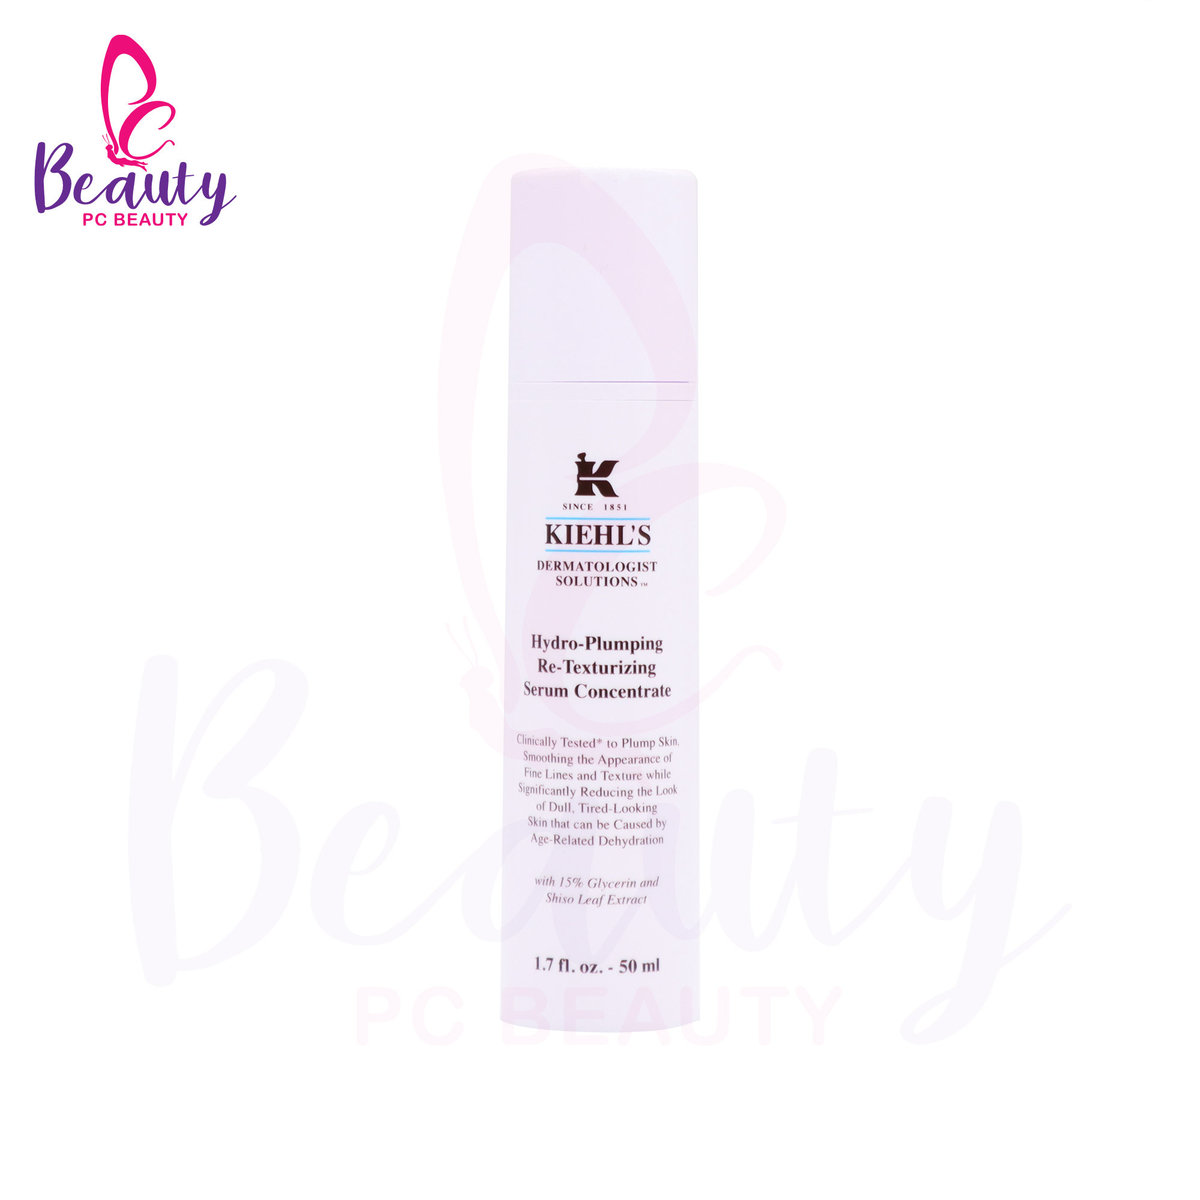 KIEHL'S  HYDRO-PLUMPING RE-TEXTURIZING SERUM CONCENTRATE 50ML [Parallel Import Product]